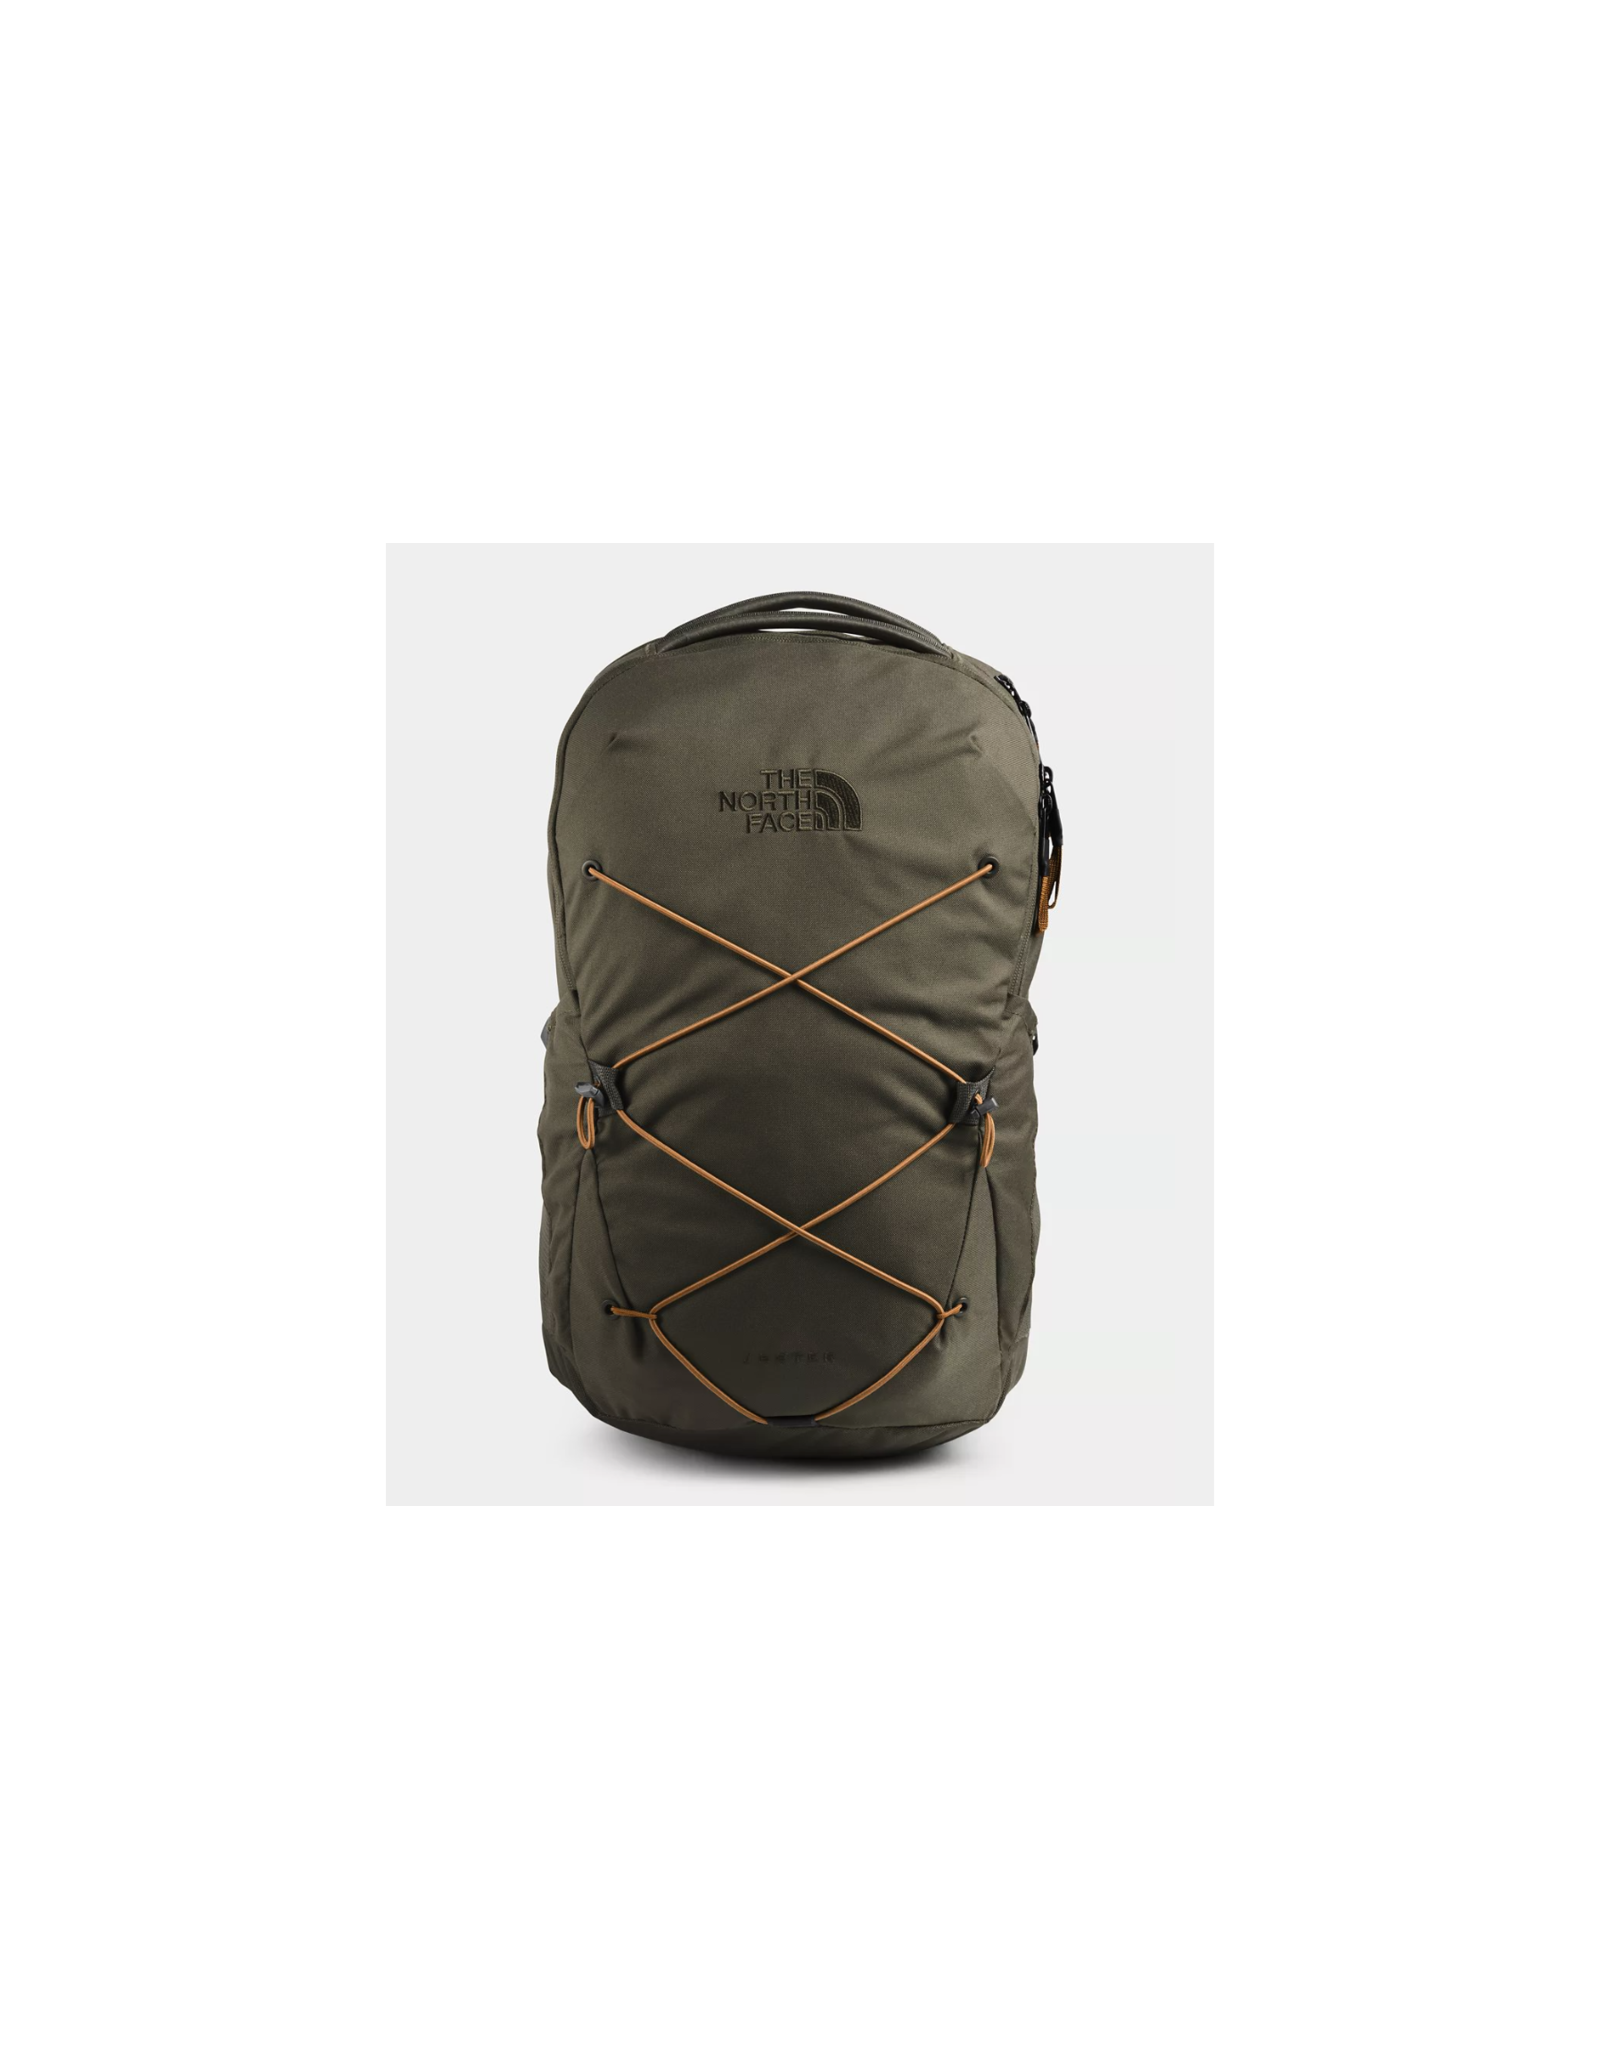 North Face North Face Jester Backpack Taupe Green/Utility Brown